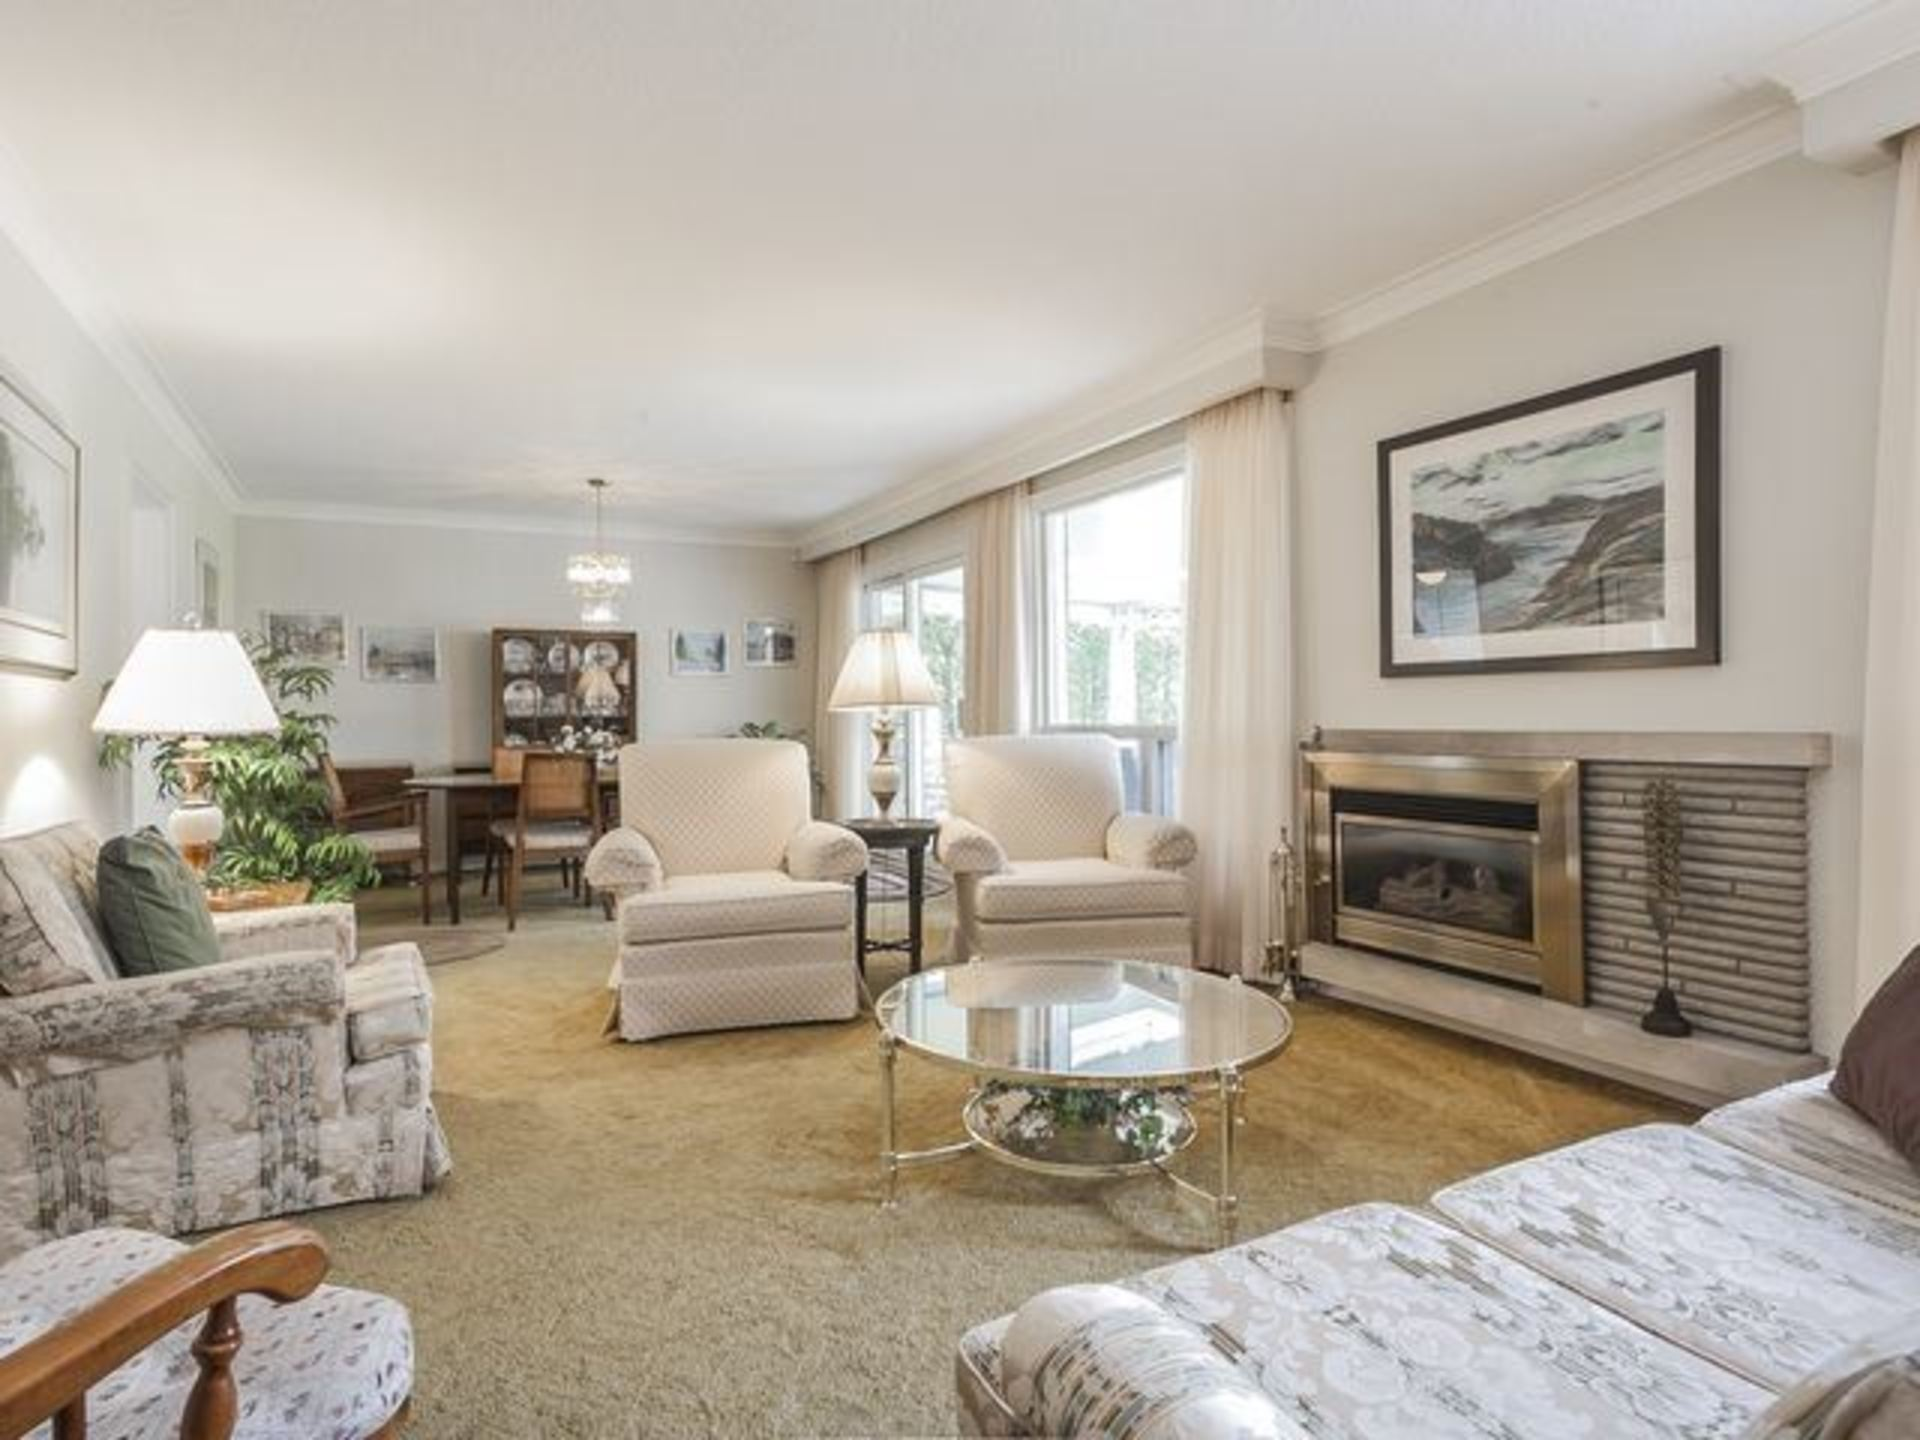 33 at SALE # 464 - 46 Palomino Crescent, Bayview Village, Toronto